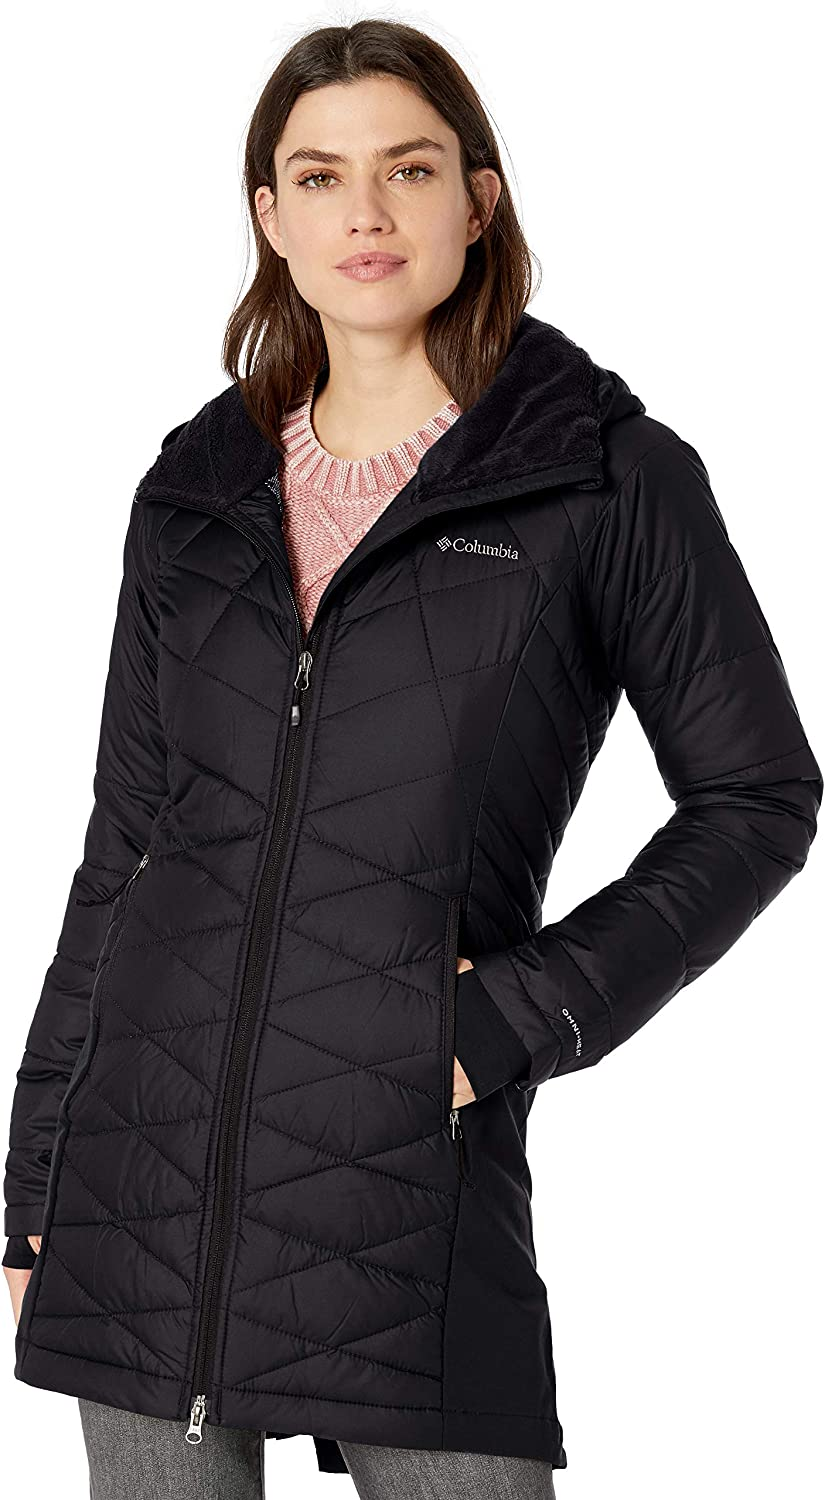 Columbia Womens Heavenly Long Hybrid Jacket : Clothing